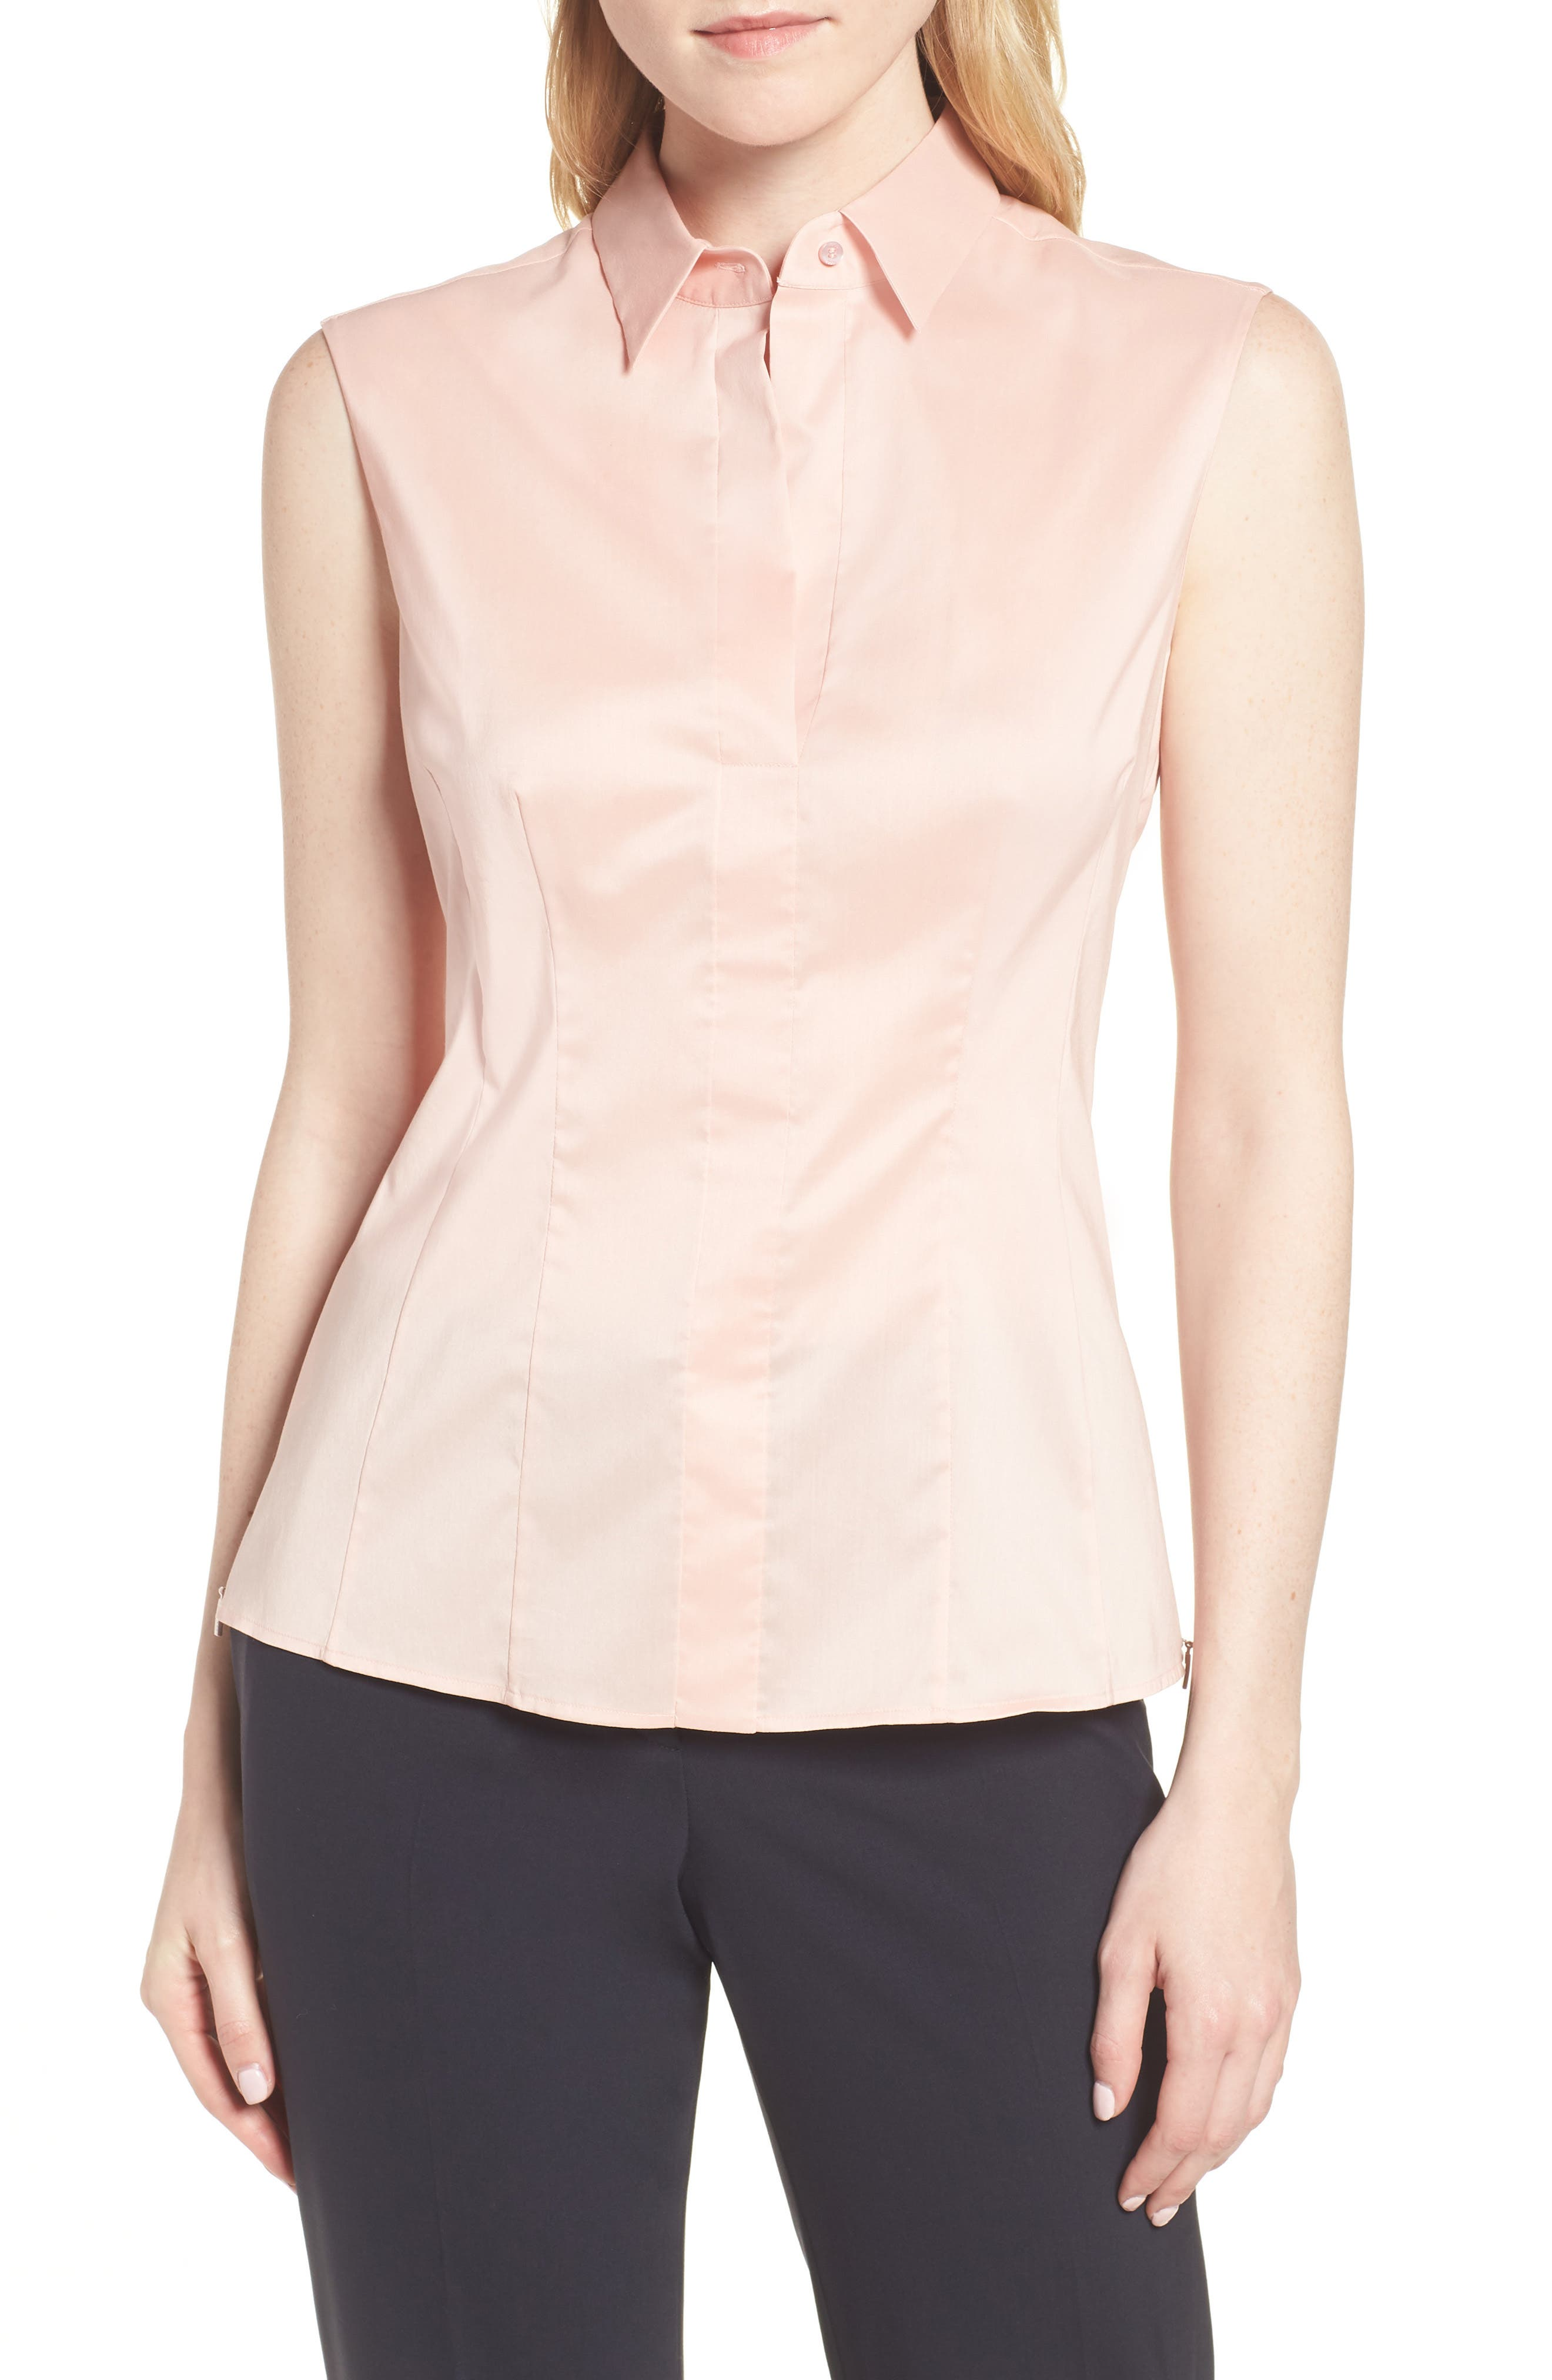 Bashiva Stretch Poplin Blouse,                             Main thumbnail 1, color,                             Blush